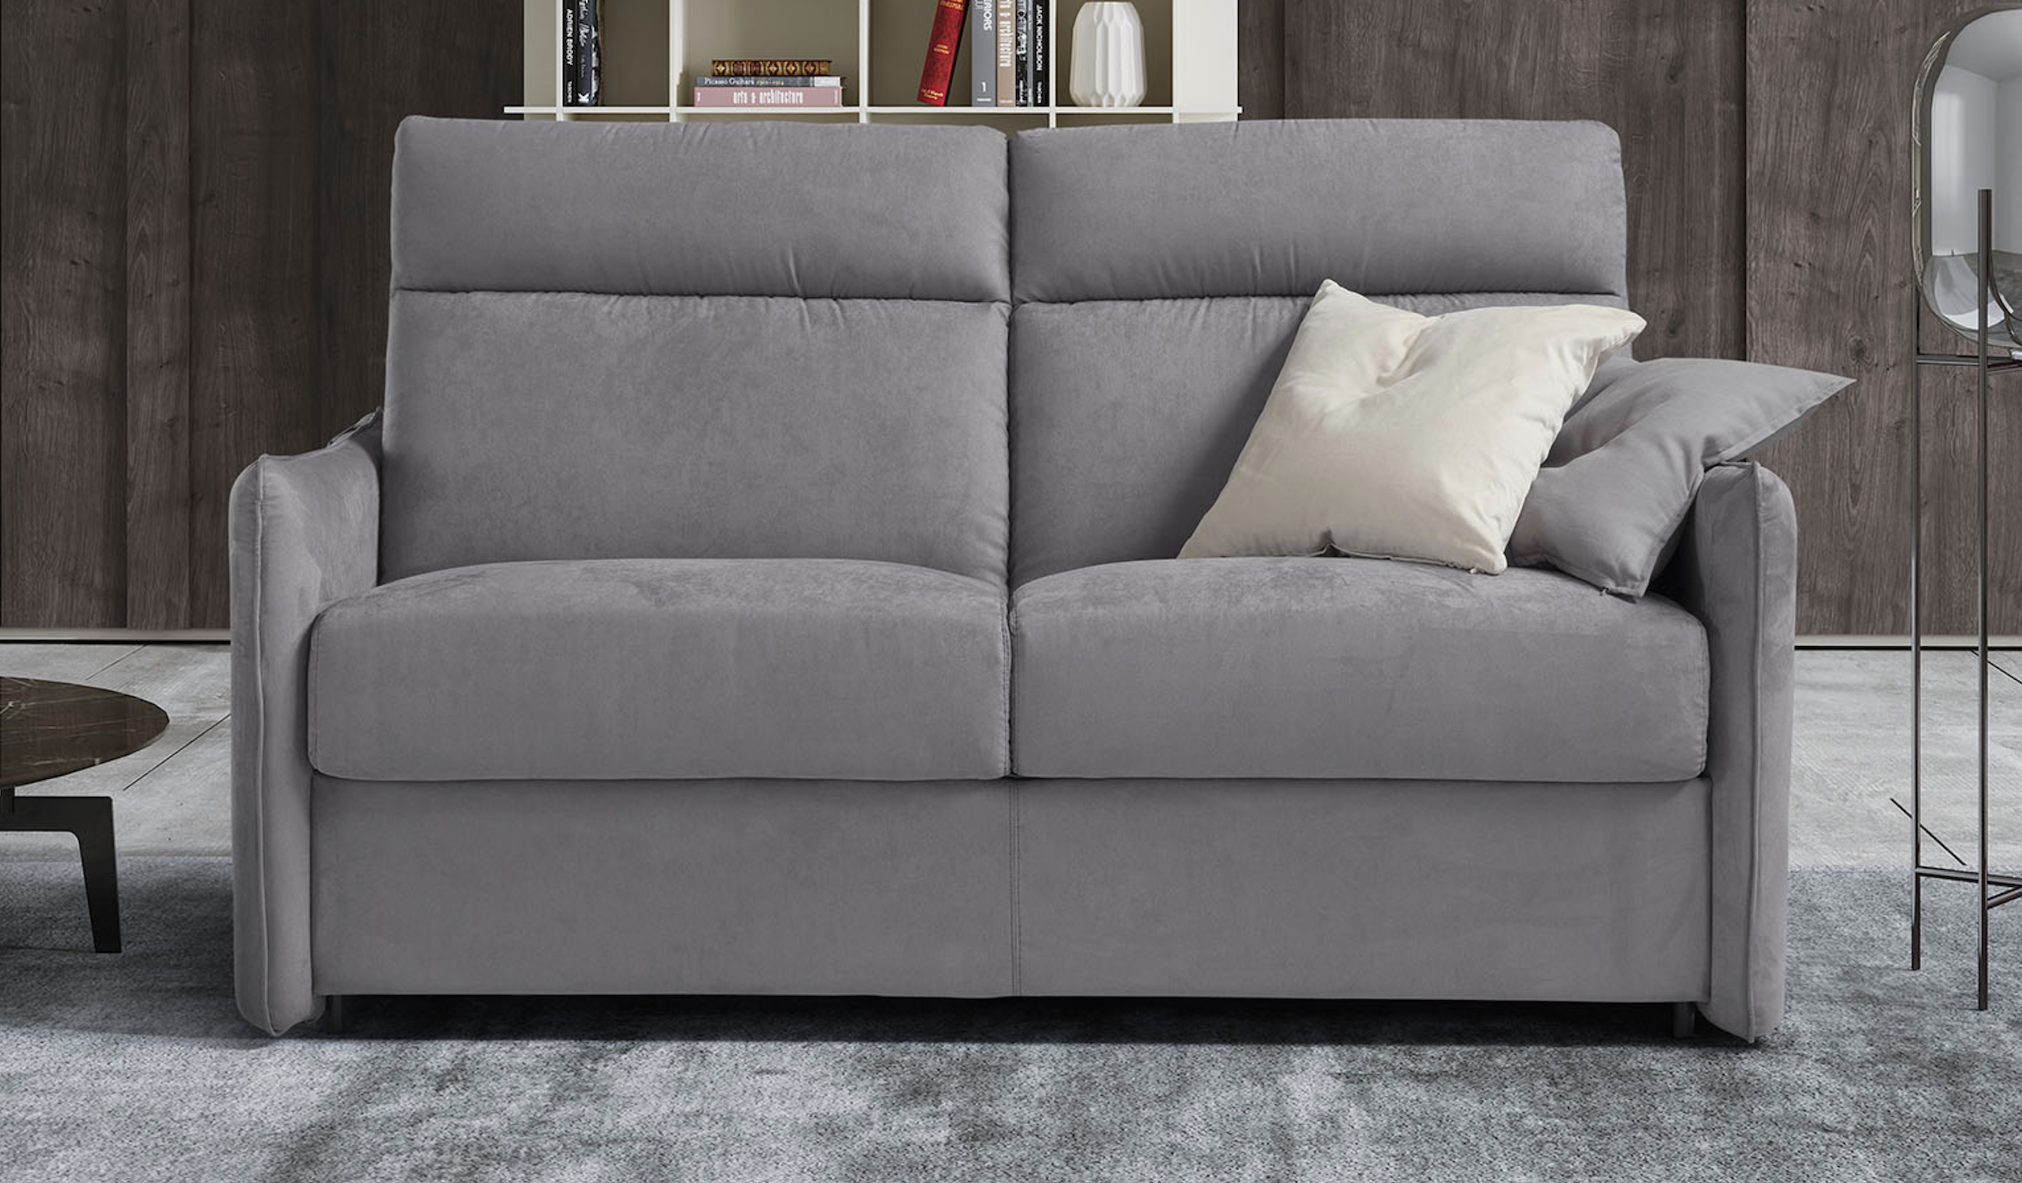 AIMEE Italian Crafted 3 Seat Sofa Bed in PLAZA GREY. RRP £1979 - Image 2 of 5